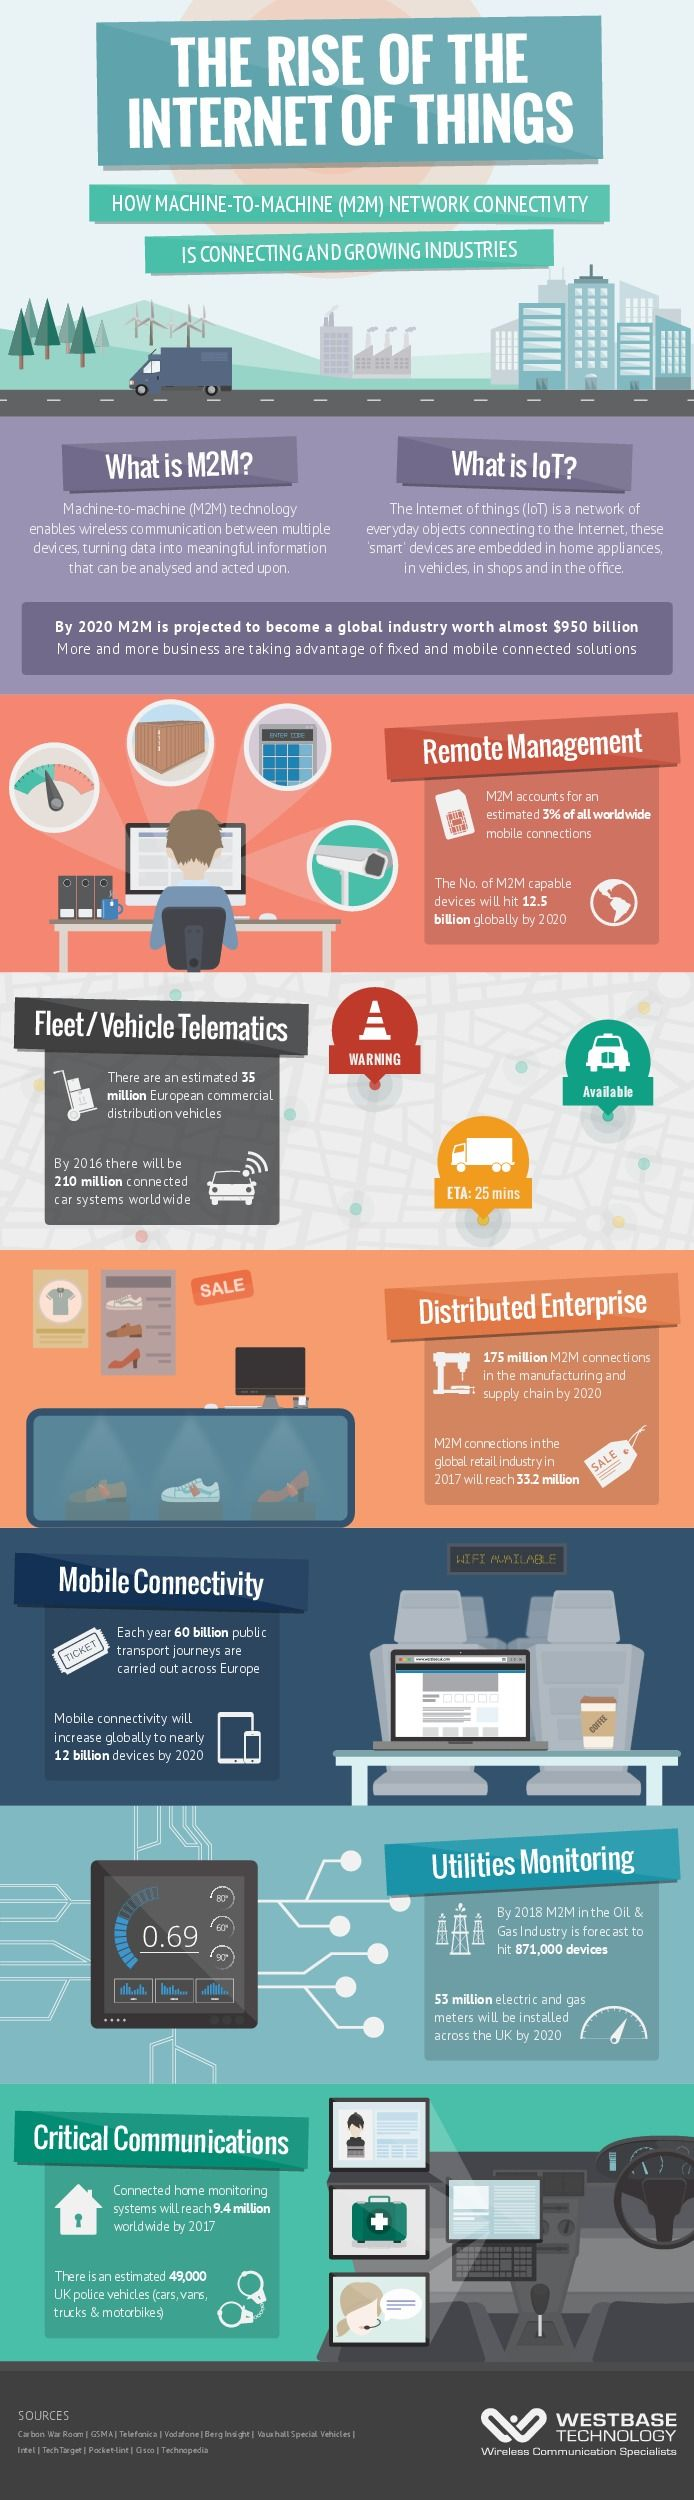 Infographic: The Rise of the Internet of Things #infographicwww.SELLaBIZ.gr ΠΩΛΗΣΕΙΣ ΕΠΙΧΕΙΡΗΣΕΩΝ ΔΩΡΕΑΝ ΑΓΓΕΛΙΕΣ ΠΩΛΗΣΗΣ ΕΠΙΧΕΙΡΗΣΗΣ BUSINESS FOR SALE FREE OF CHARGE PUBLICATION